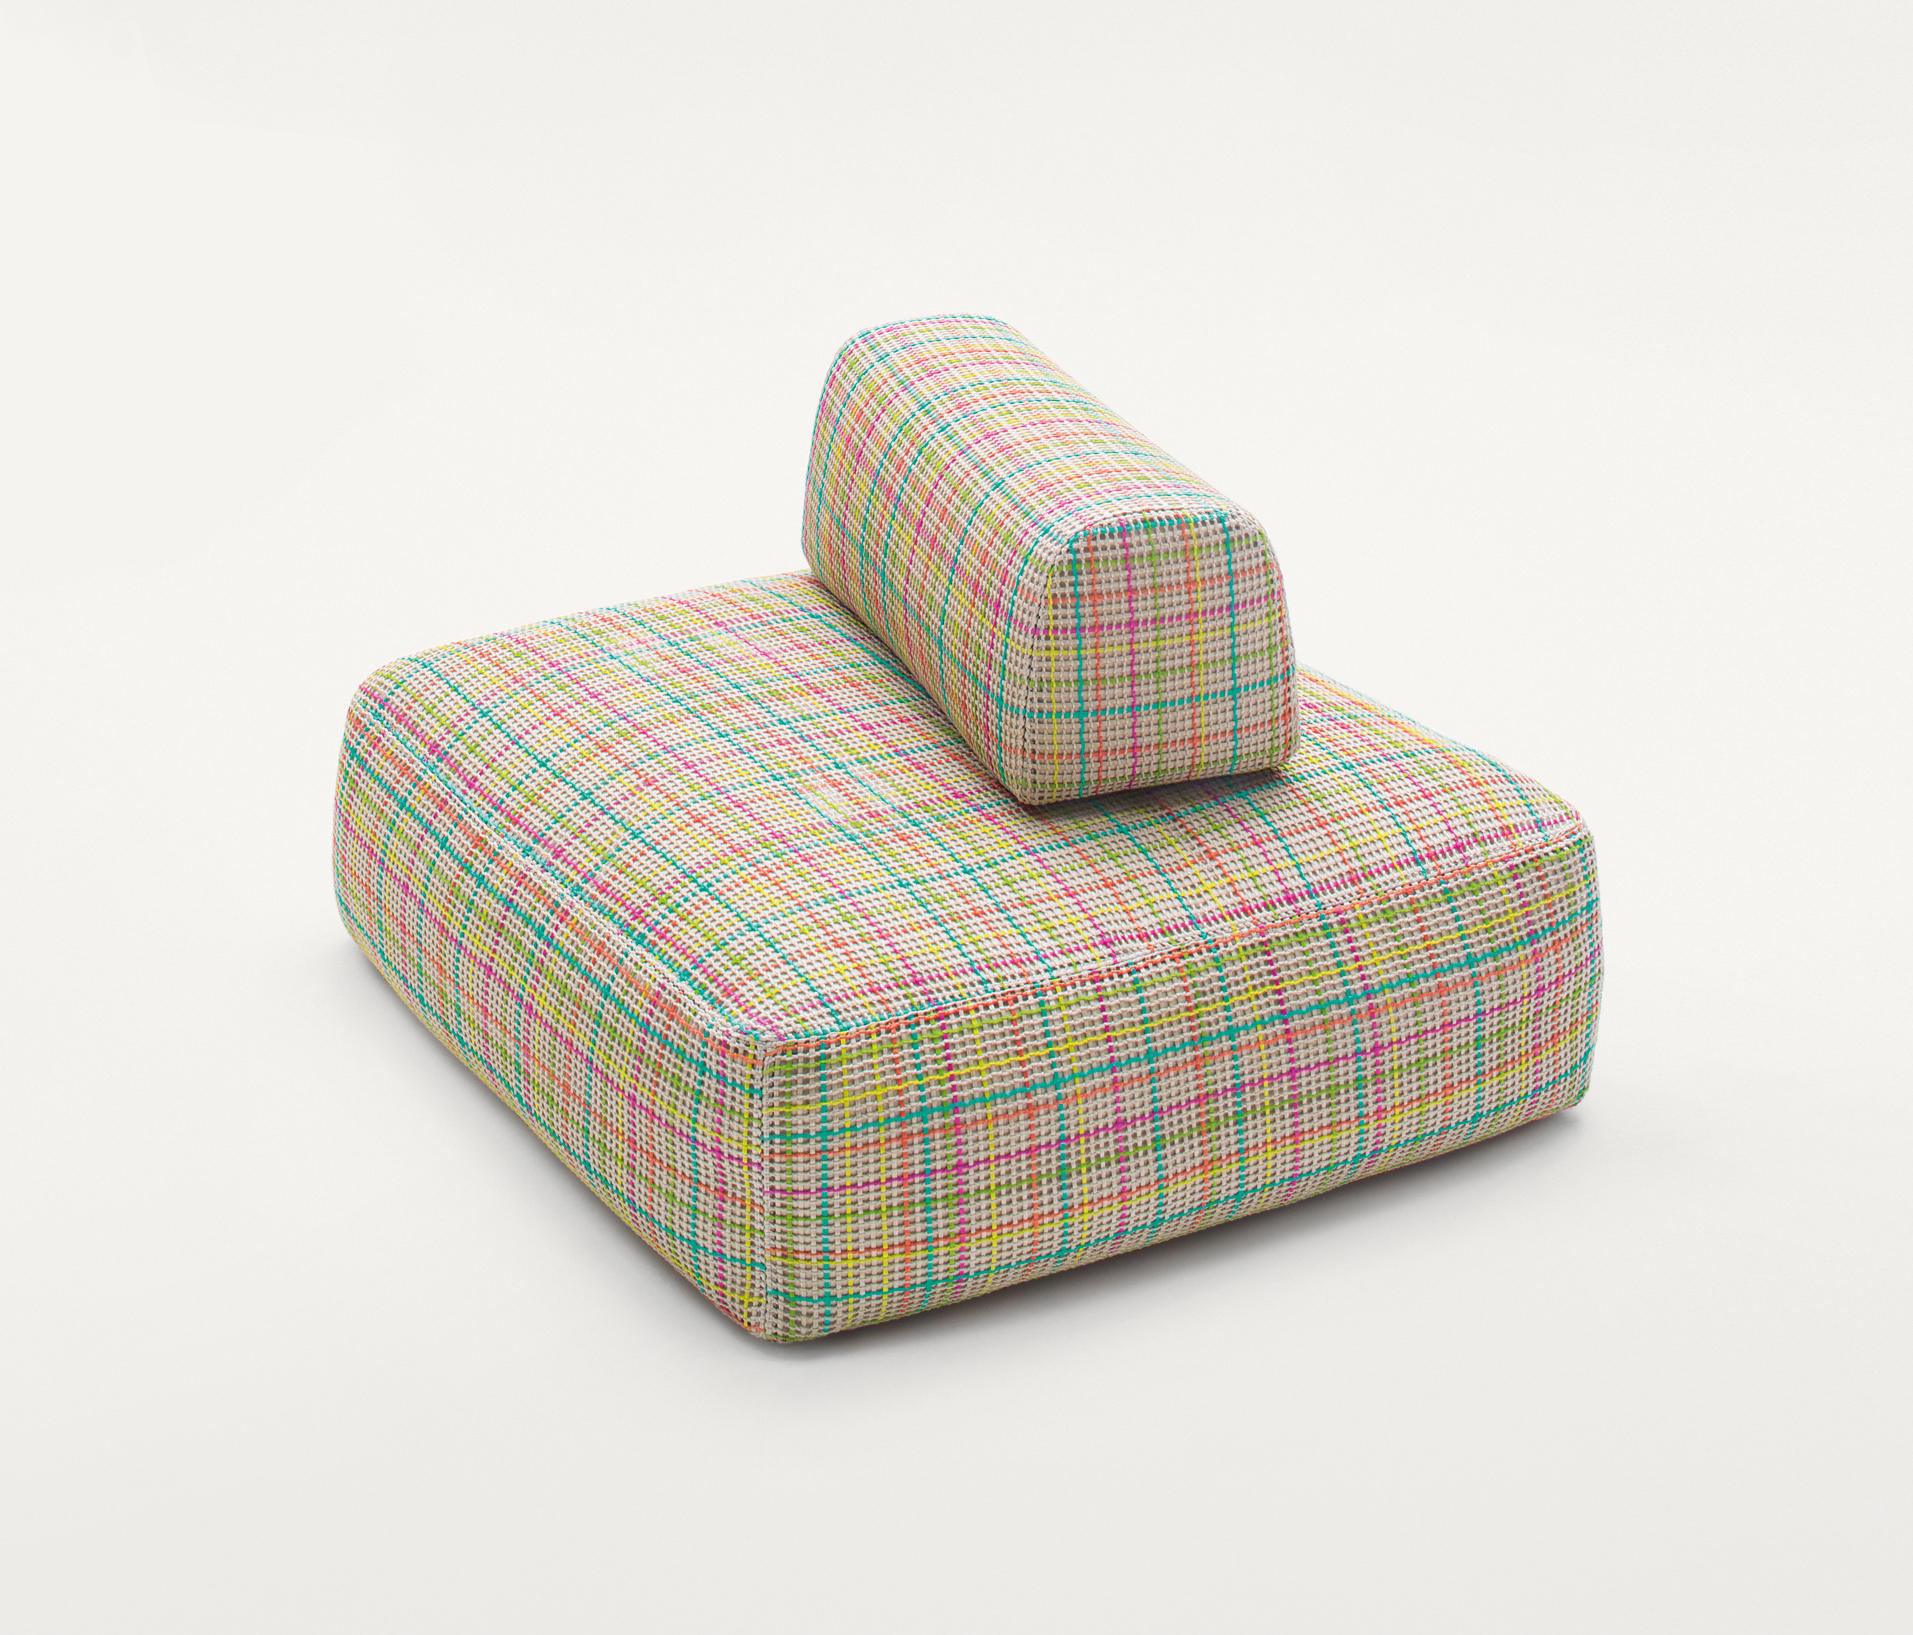 HOPI - Armchairs from Paola Lenti | Architonic